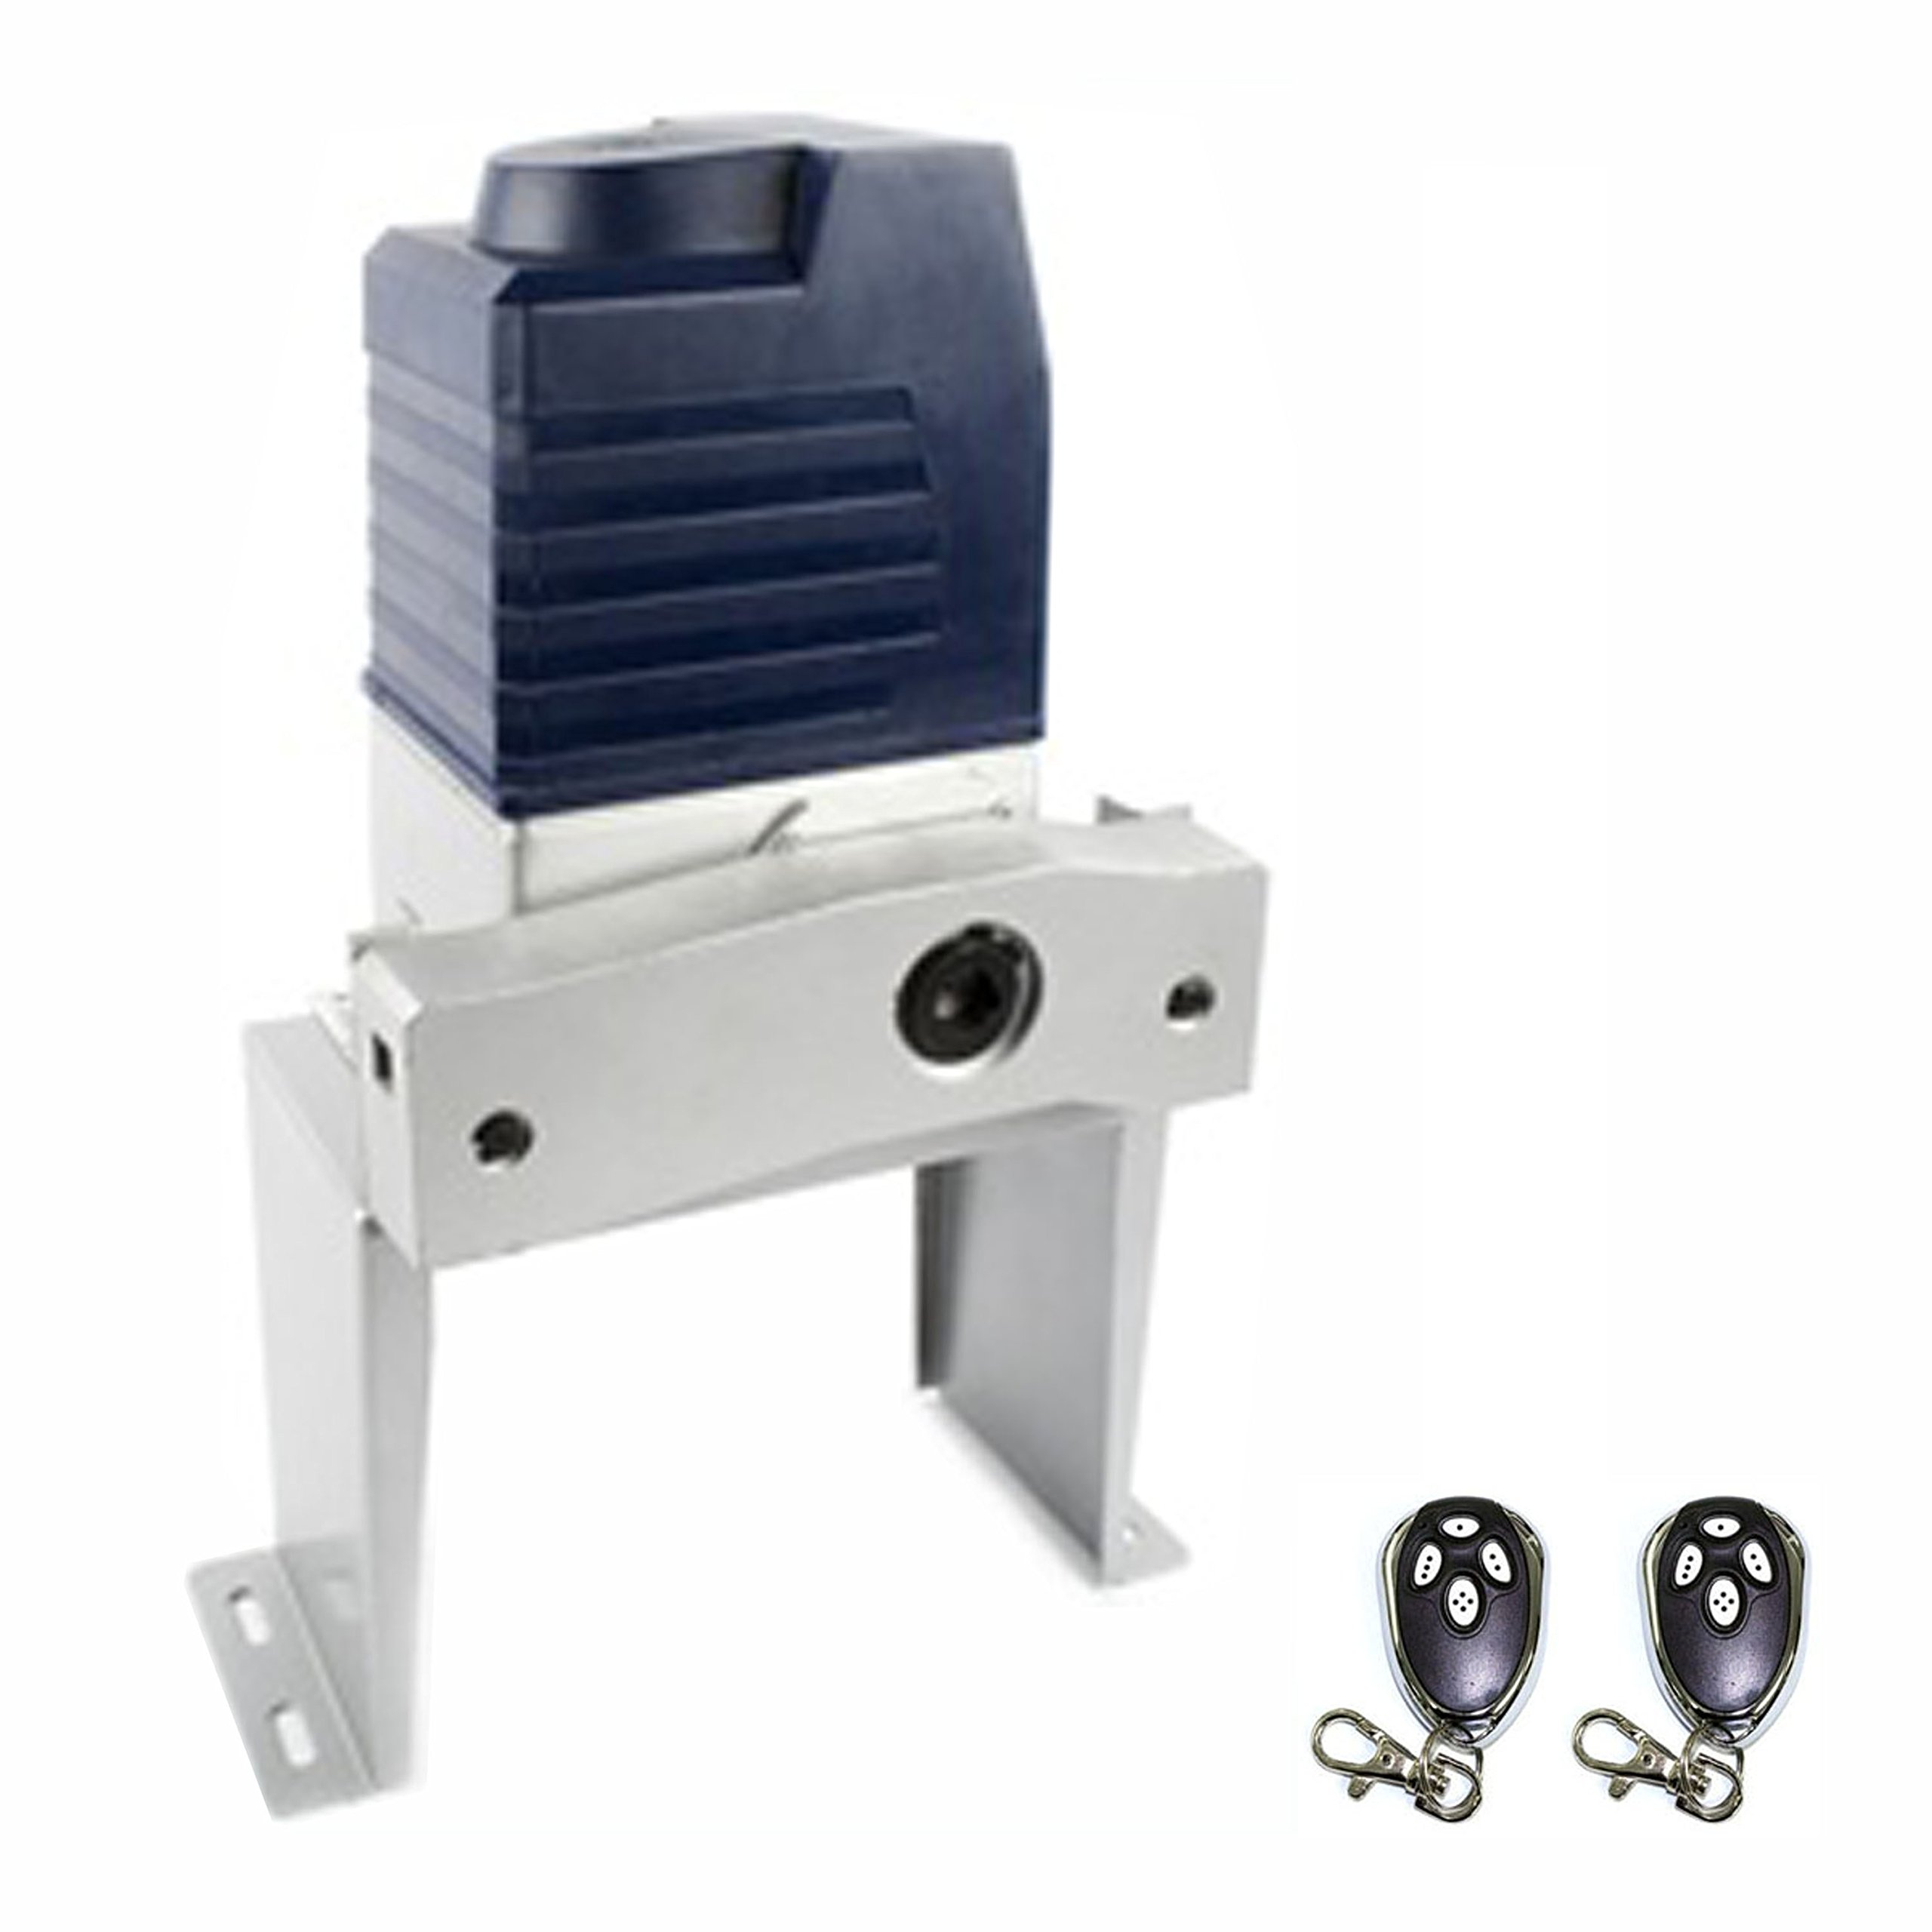 ALEKO AC2000 Sliding Gate Opener Operator for Sliding Gates Up to 60 Feet Long and 2000 Pounds